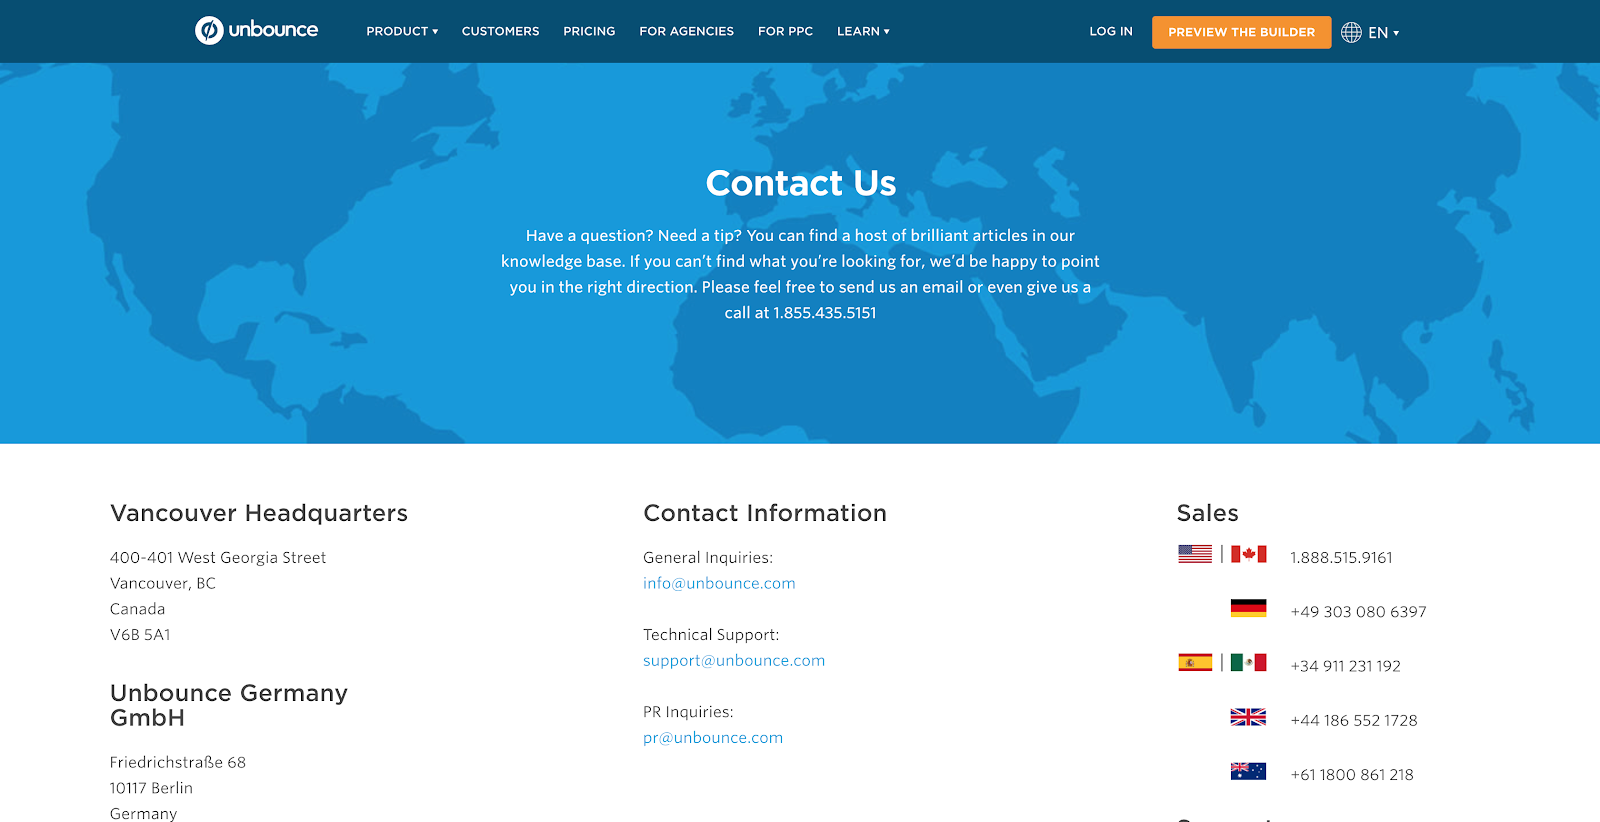 Unbounce Contact Us